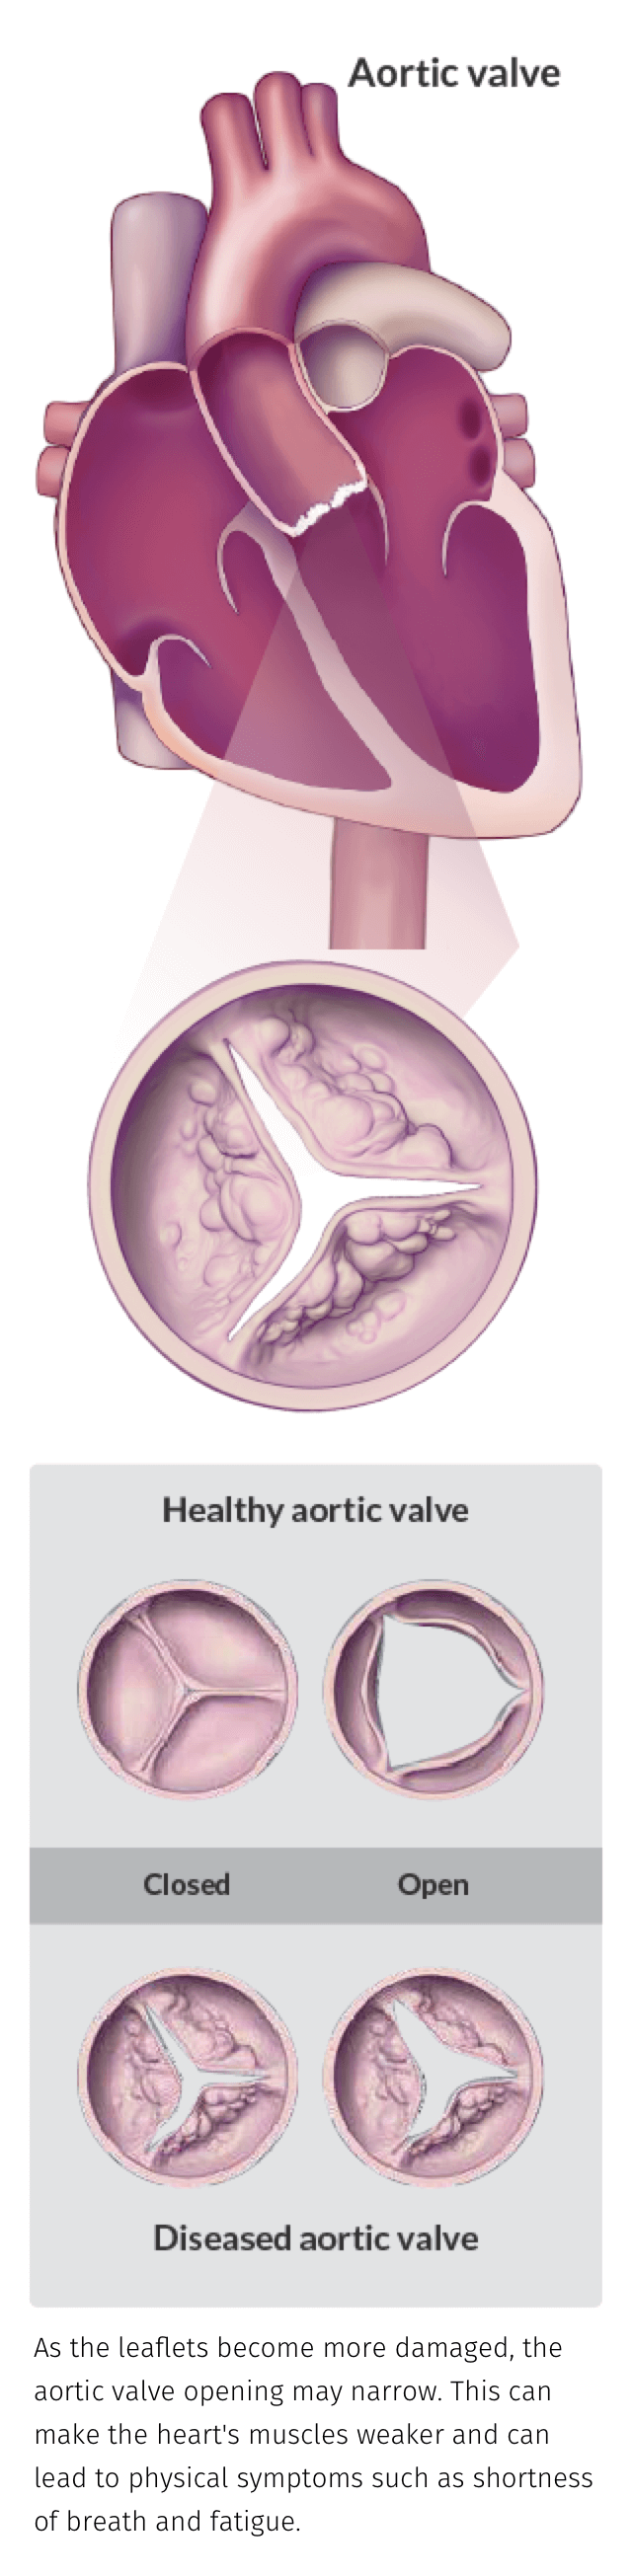 Aortic valves - As the leaflets become more damaged, the aortic valve opening may narrow. This can make the hert's muscles weaker and can lead to physical symptoms such as shortness of breath and fatigue.